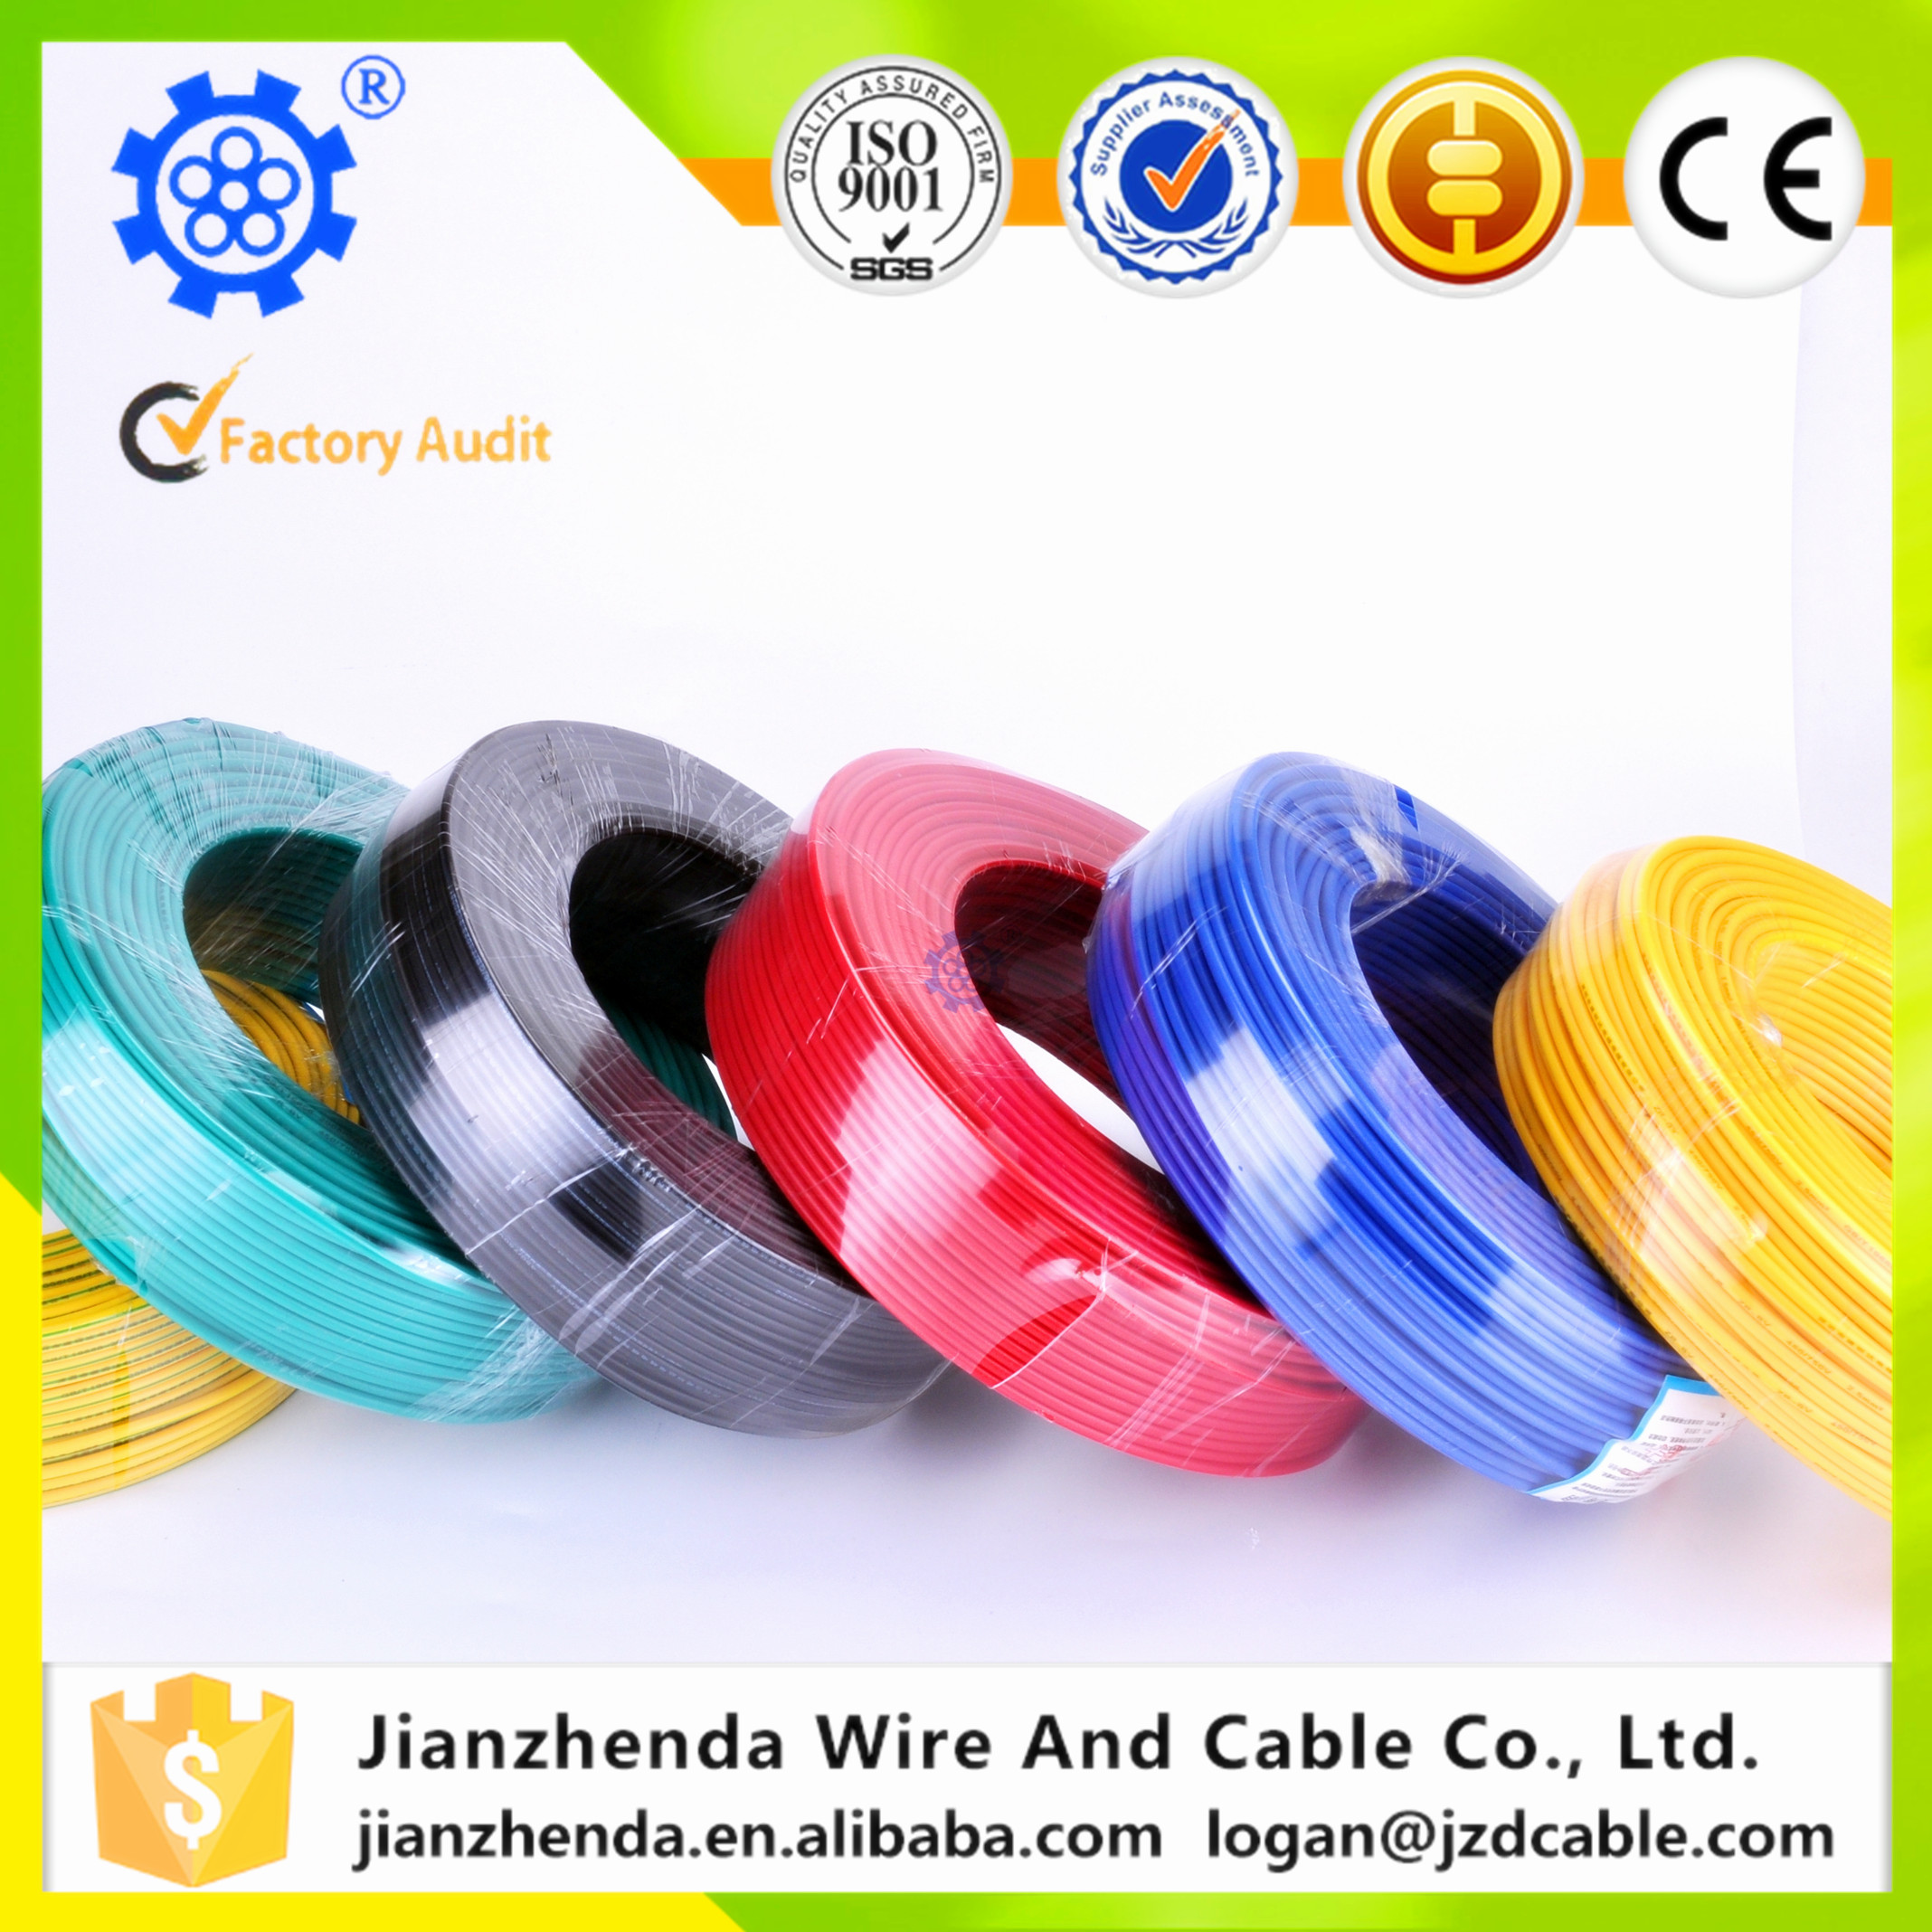 Cable buy electric cable 2 5 sq mm cable 1 5 sqmm wire product on - Cable Buy Electric Cable 2 5 Sq Mm Cable 1 5 Sqmm Wire Product On 12